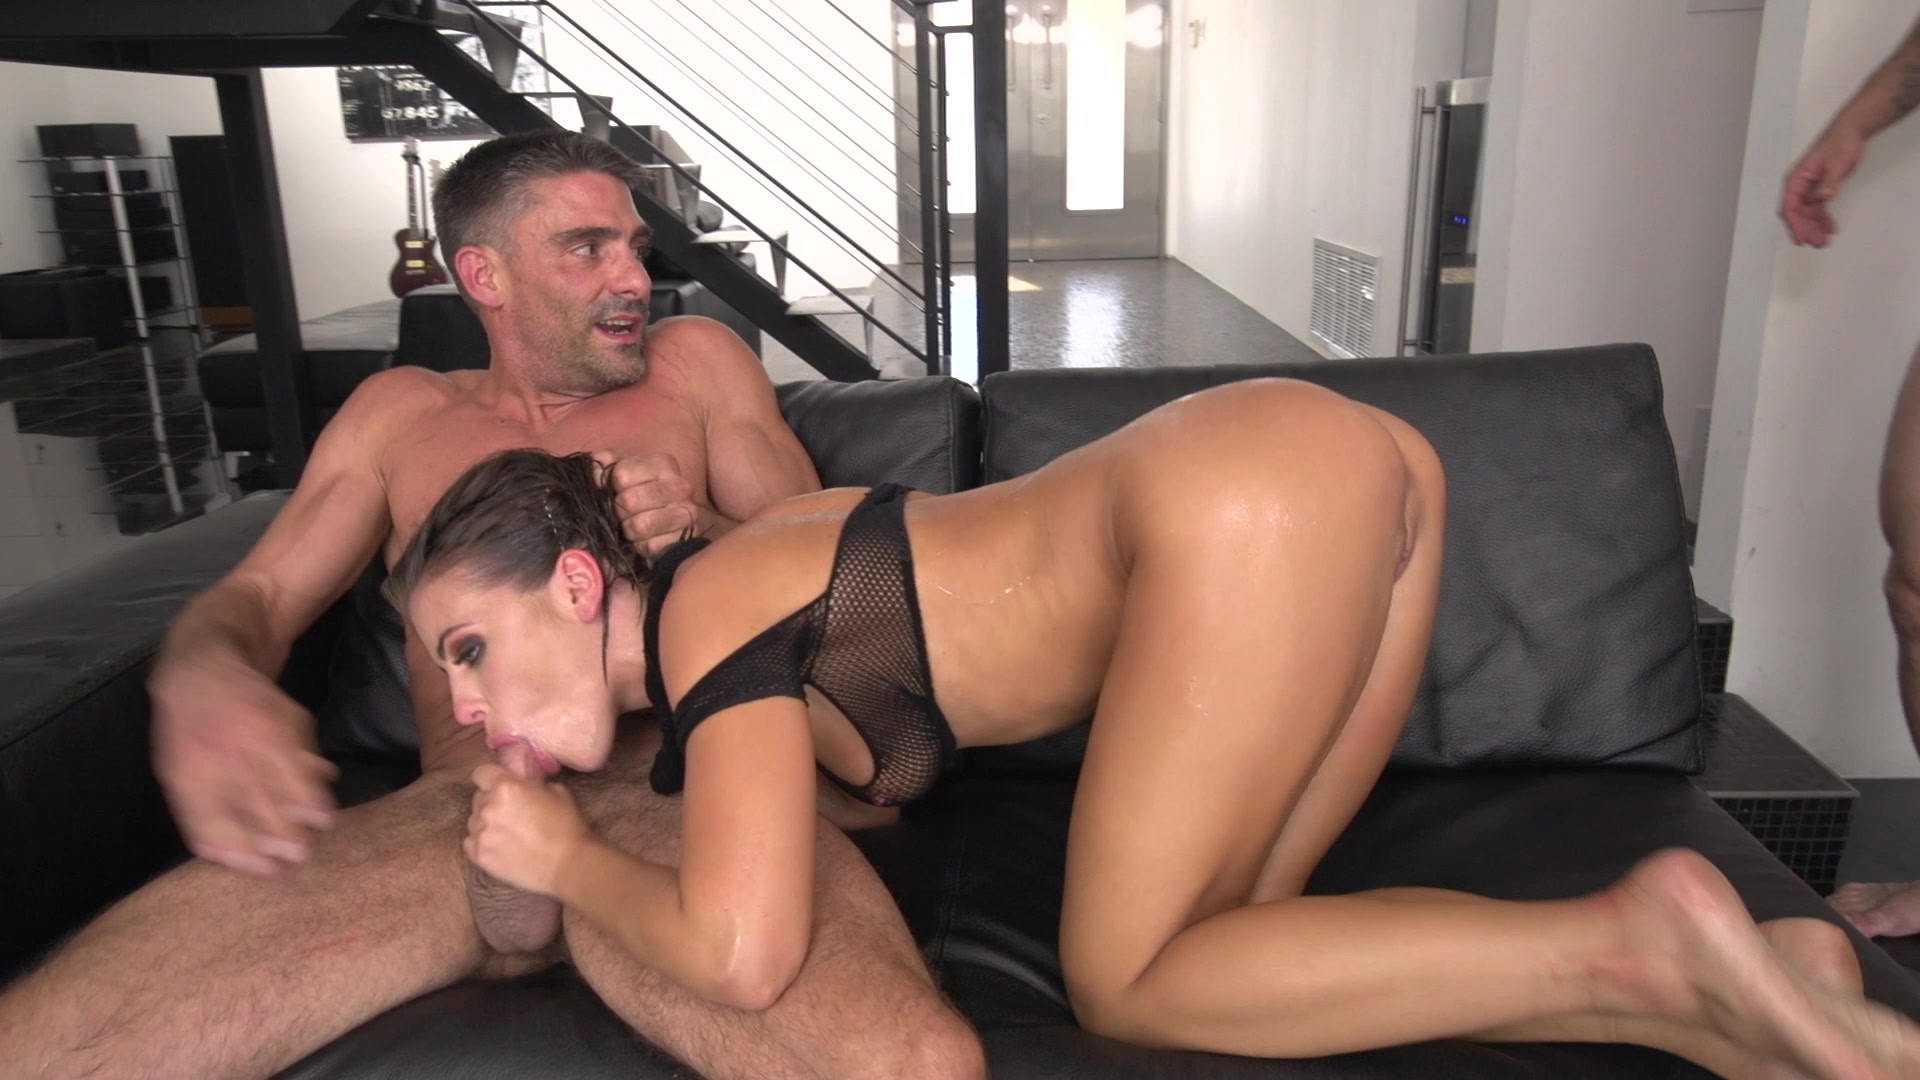 Scene with Adriana Chechik - image 7 out of 20